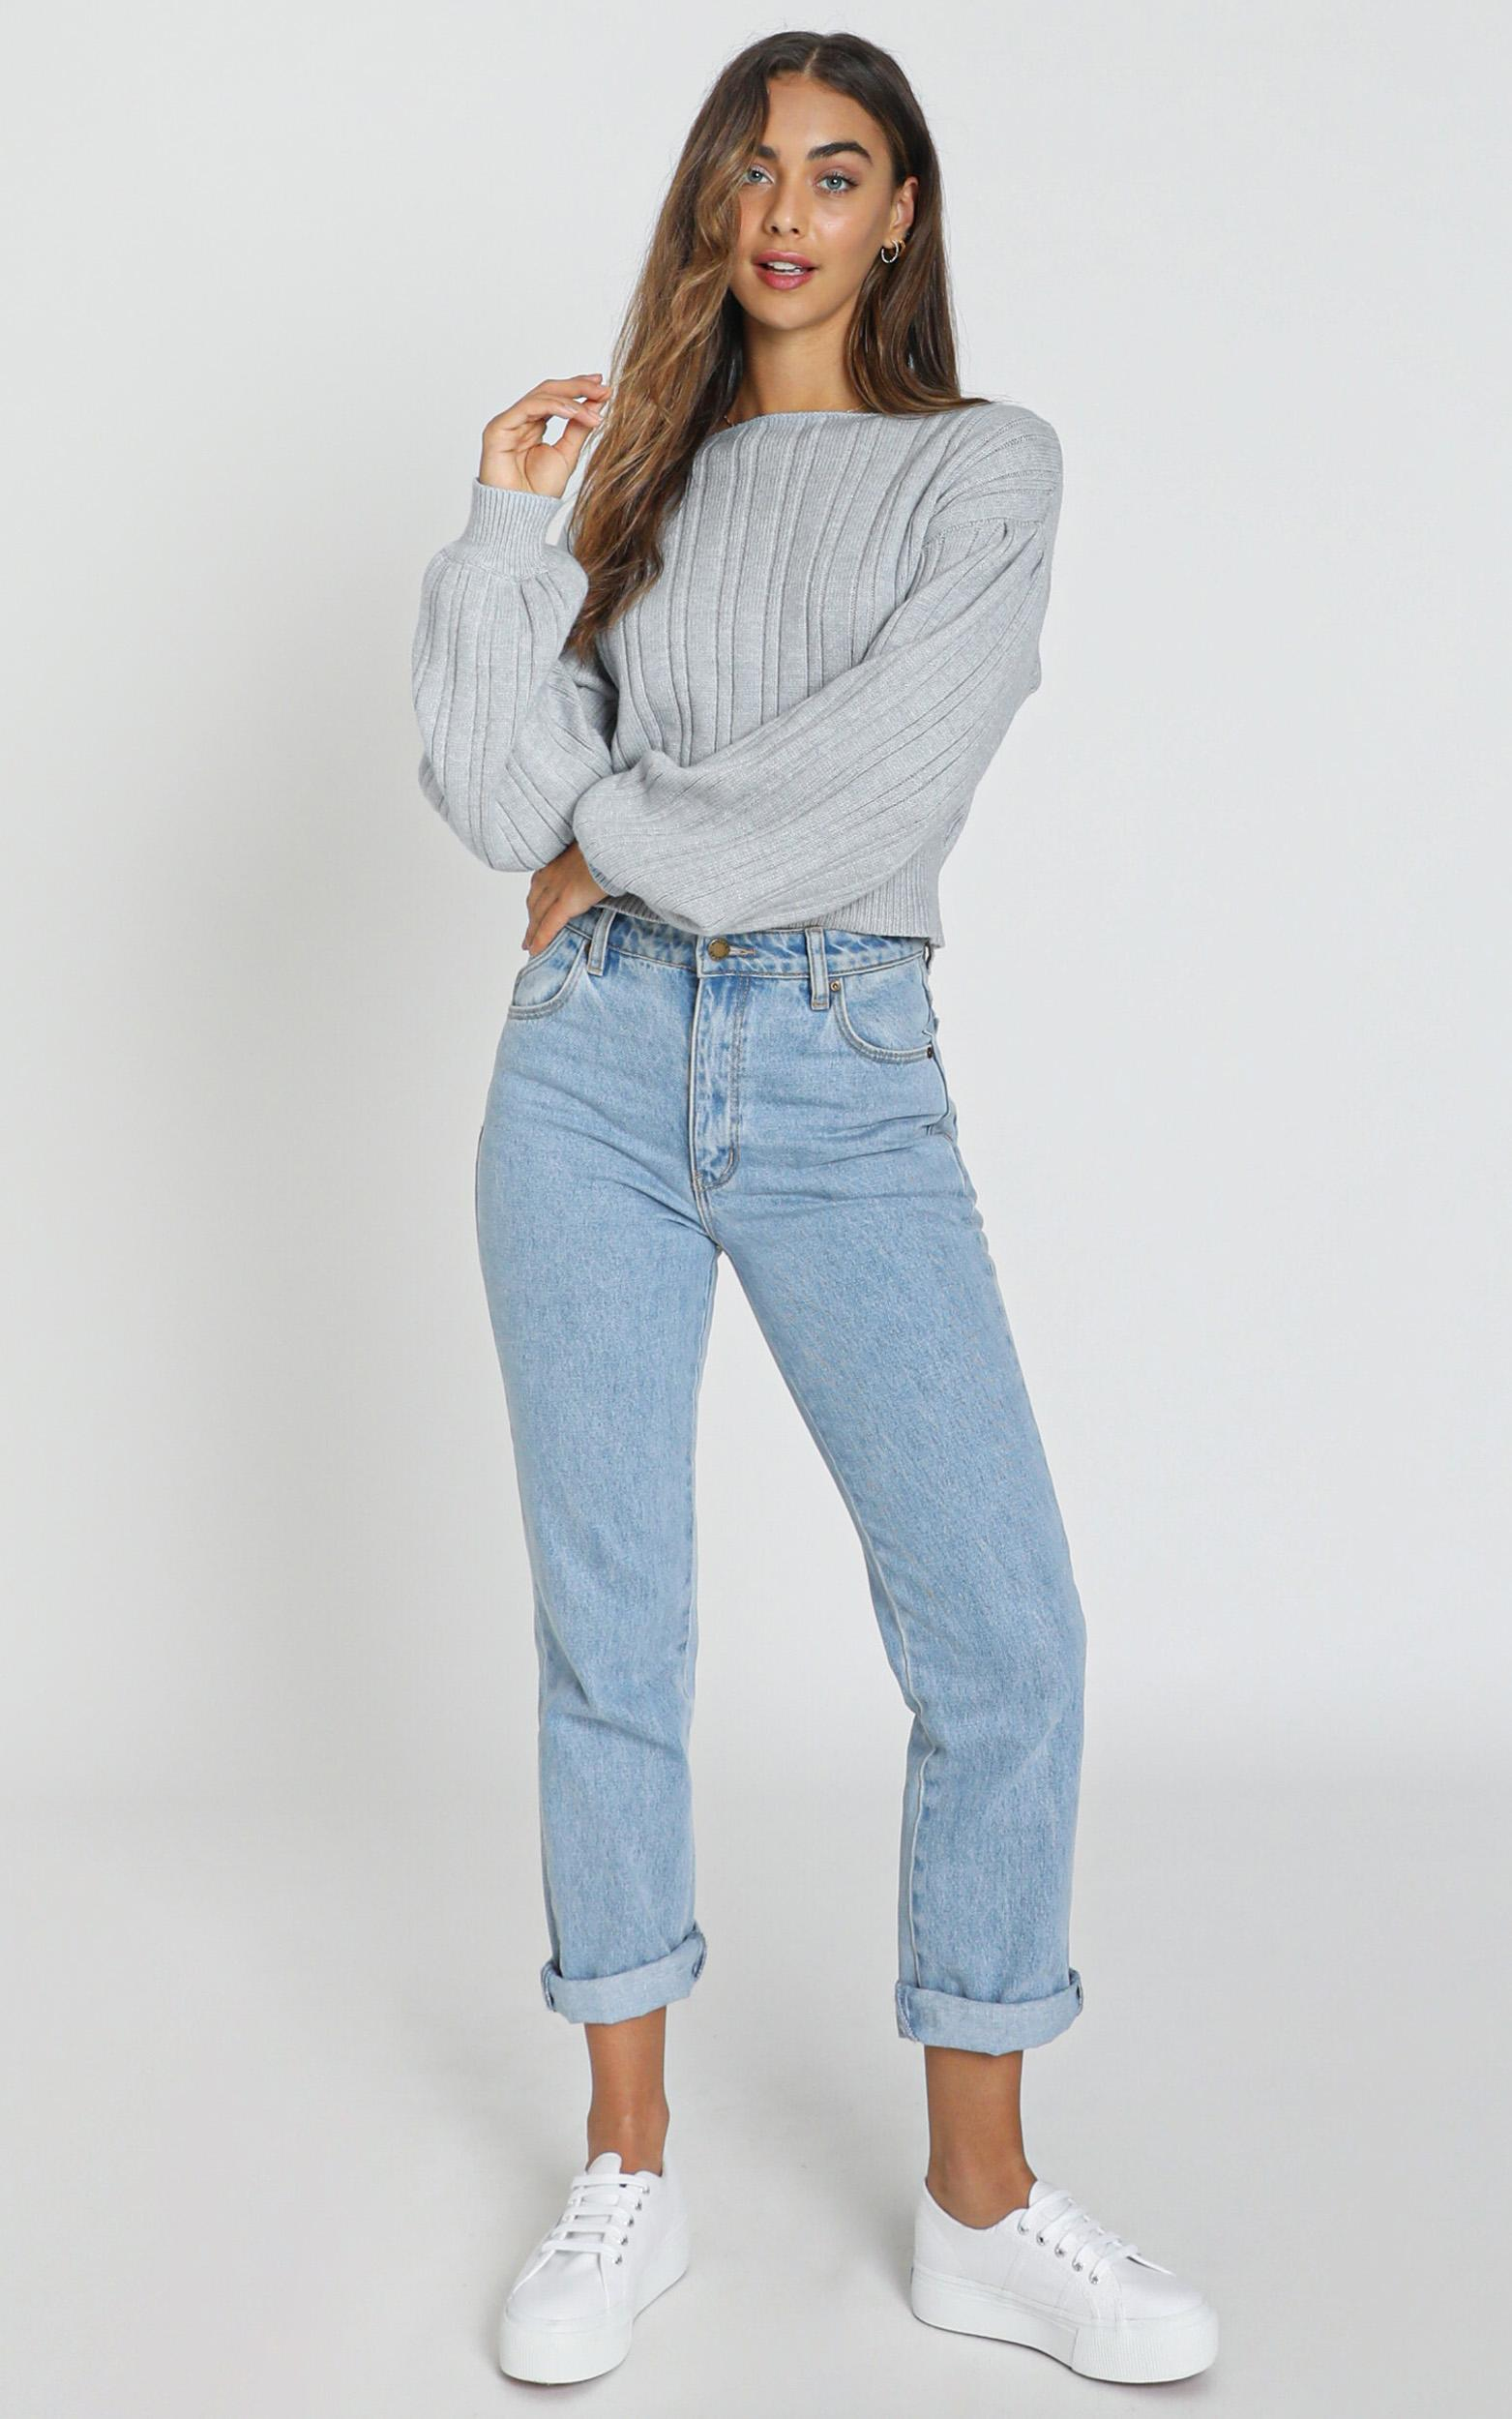 Kitty Blouson Sleeve Knit in steel blue - S/M, Blue, hi-res image number null